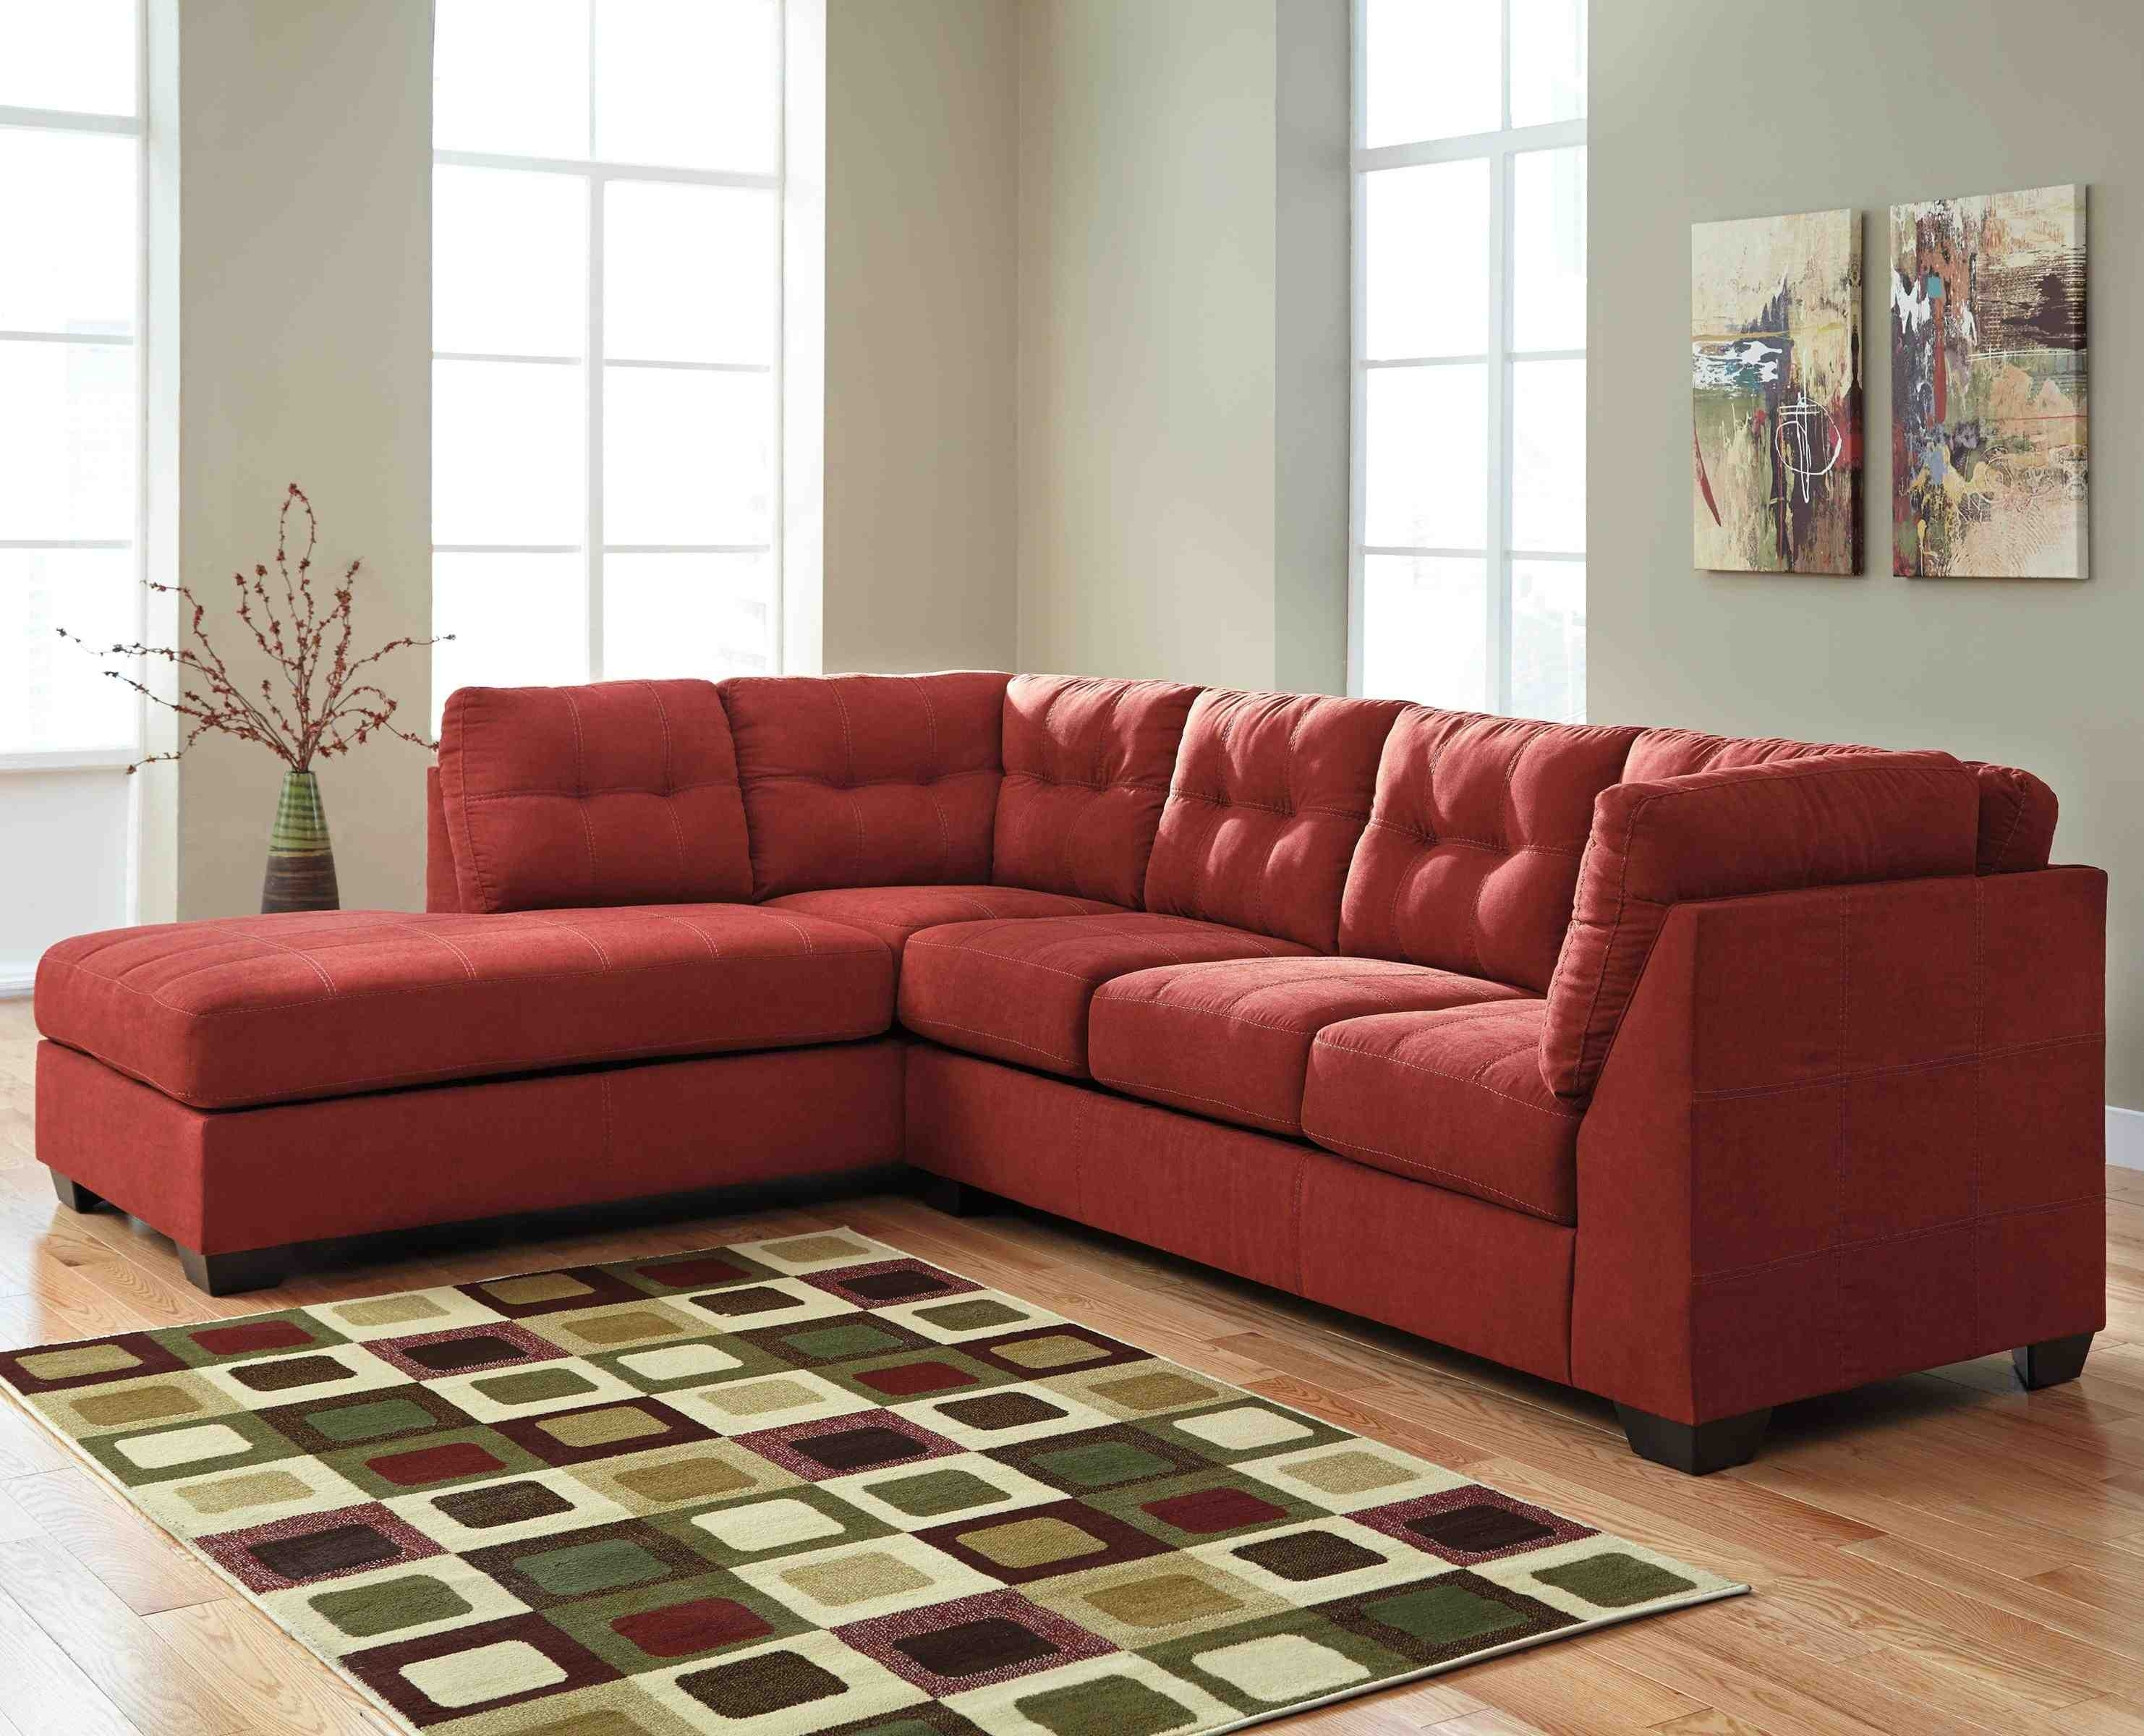 Microfiberctional Sofa With Chaise Amazing Photo Inspirations Within Arrowmask 2 Piece Sectionals With Sleeper & Left Facing Chaise (Image 19 of 25)